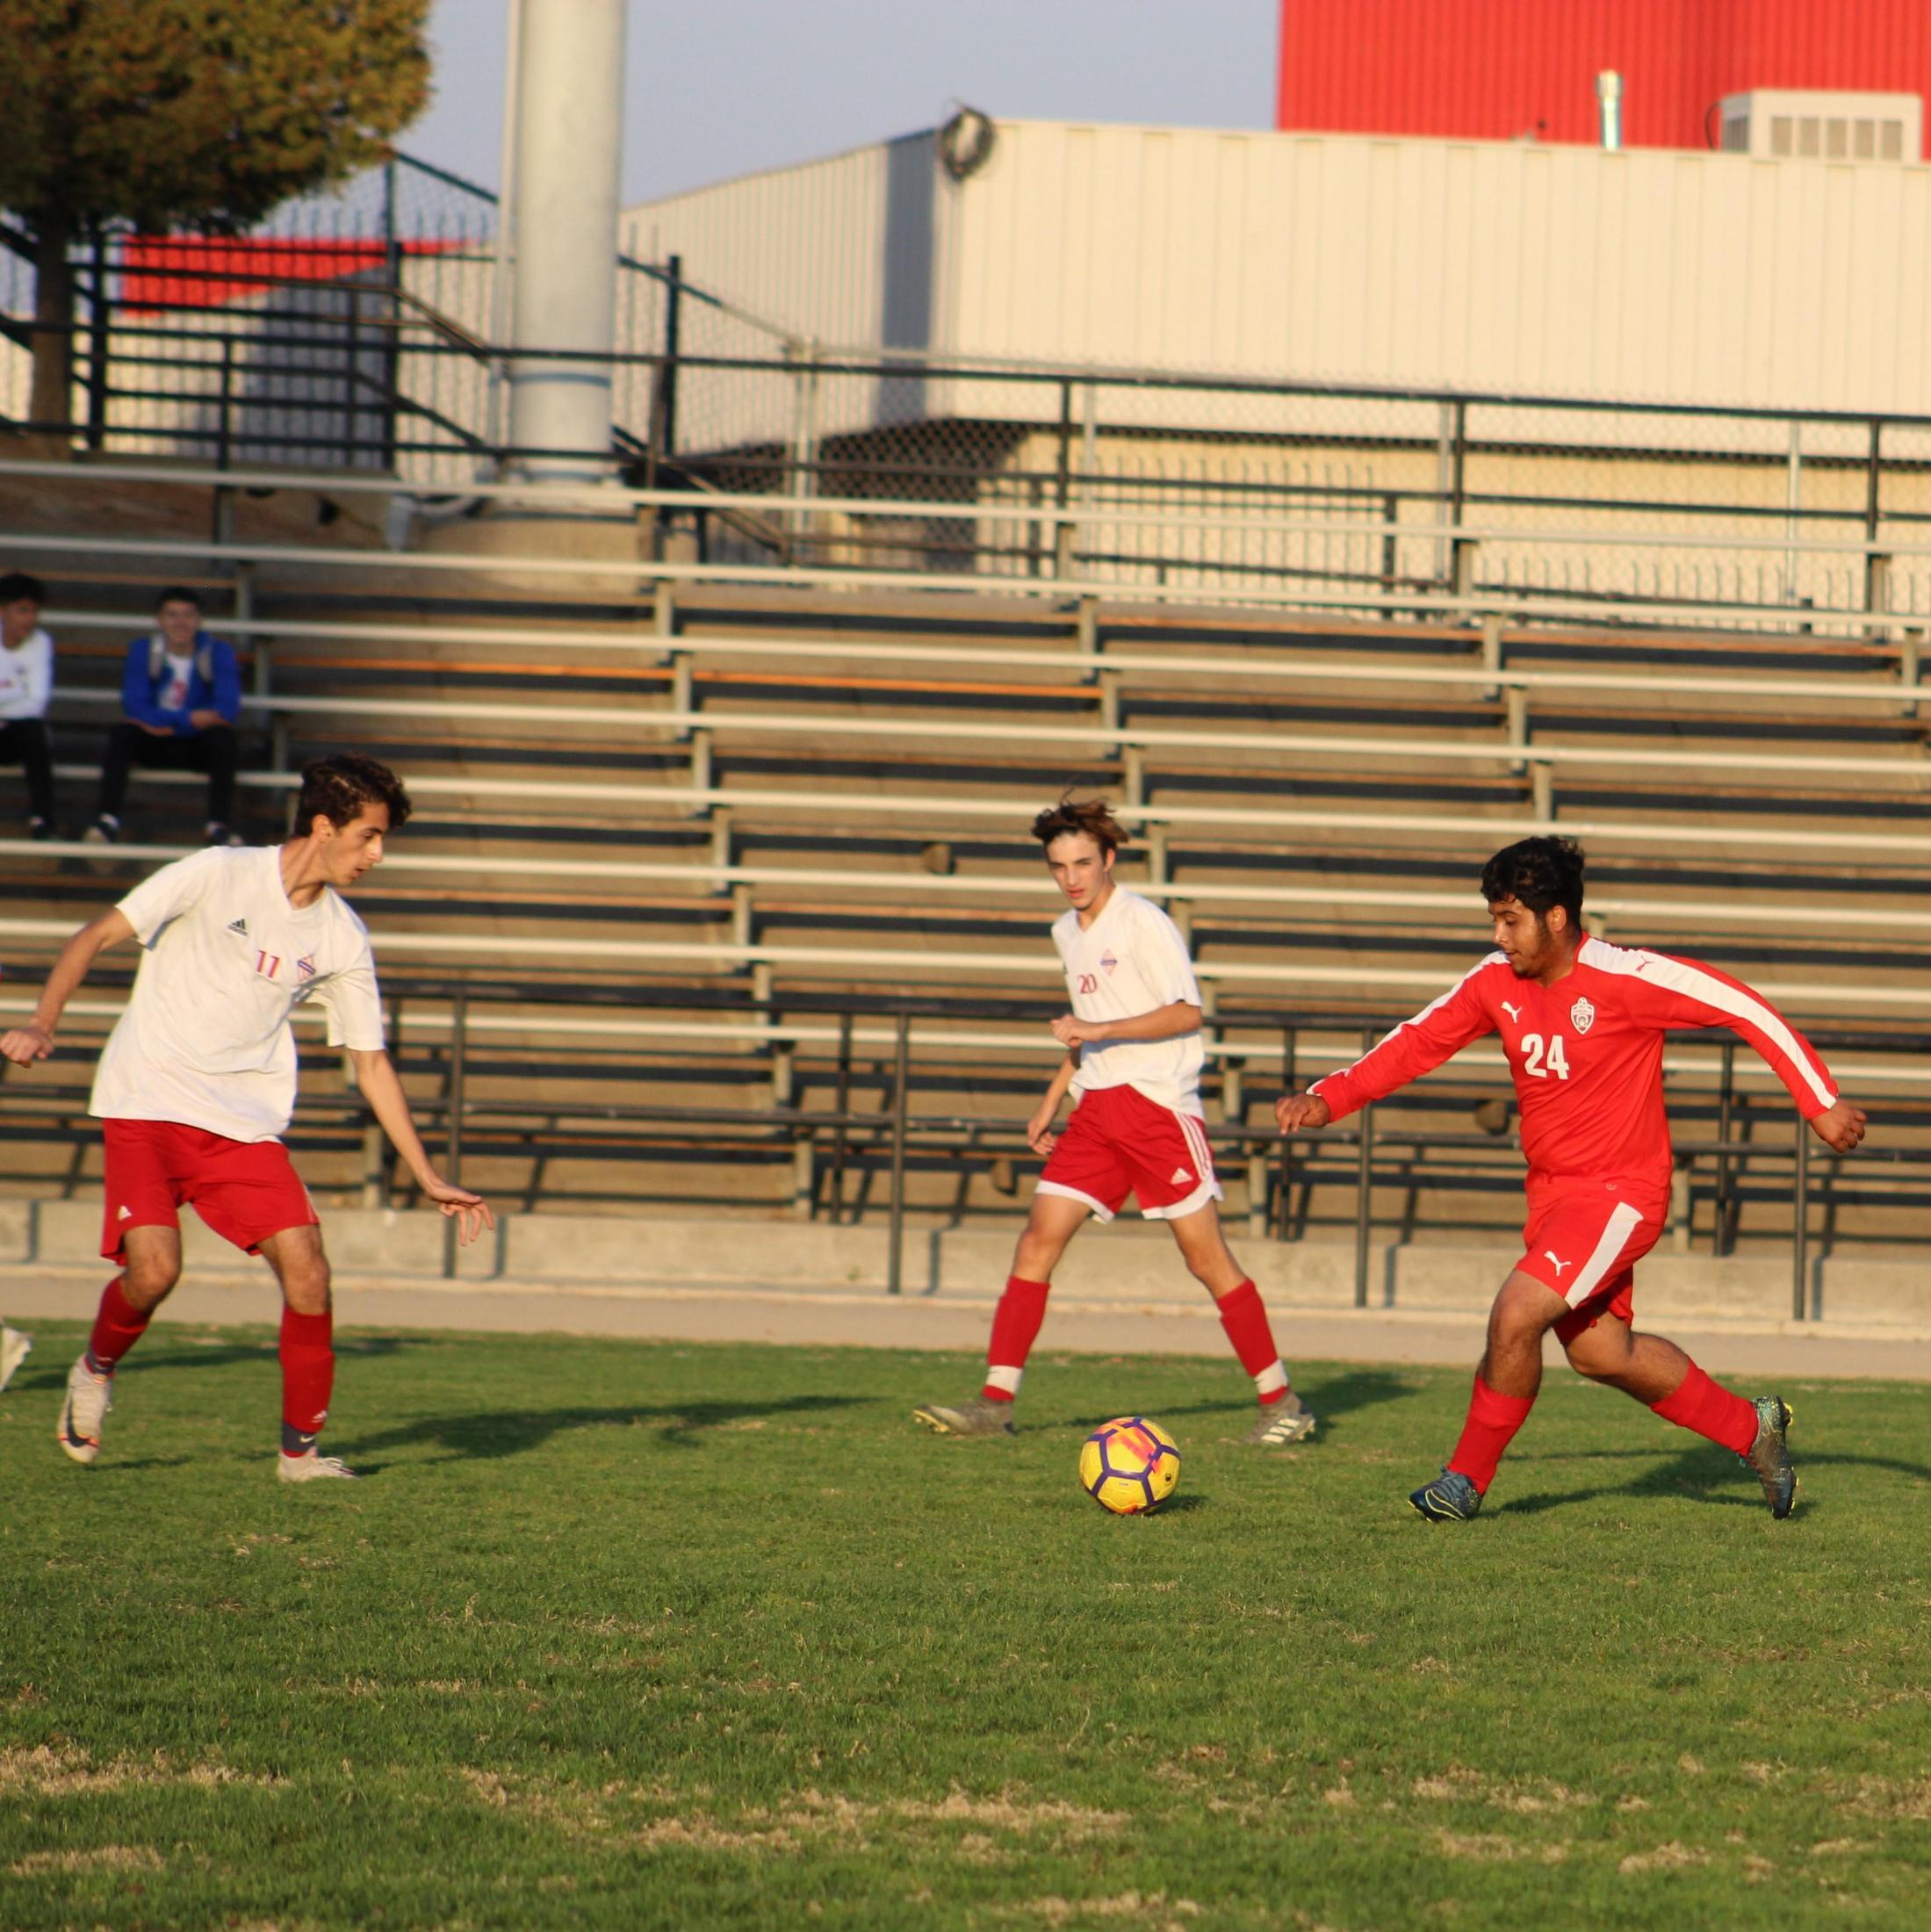 David Flores Chavez about to kick the ball